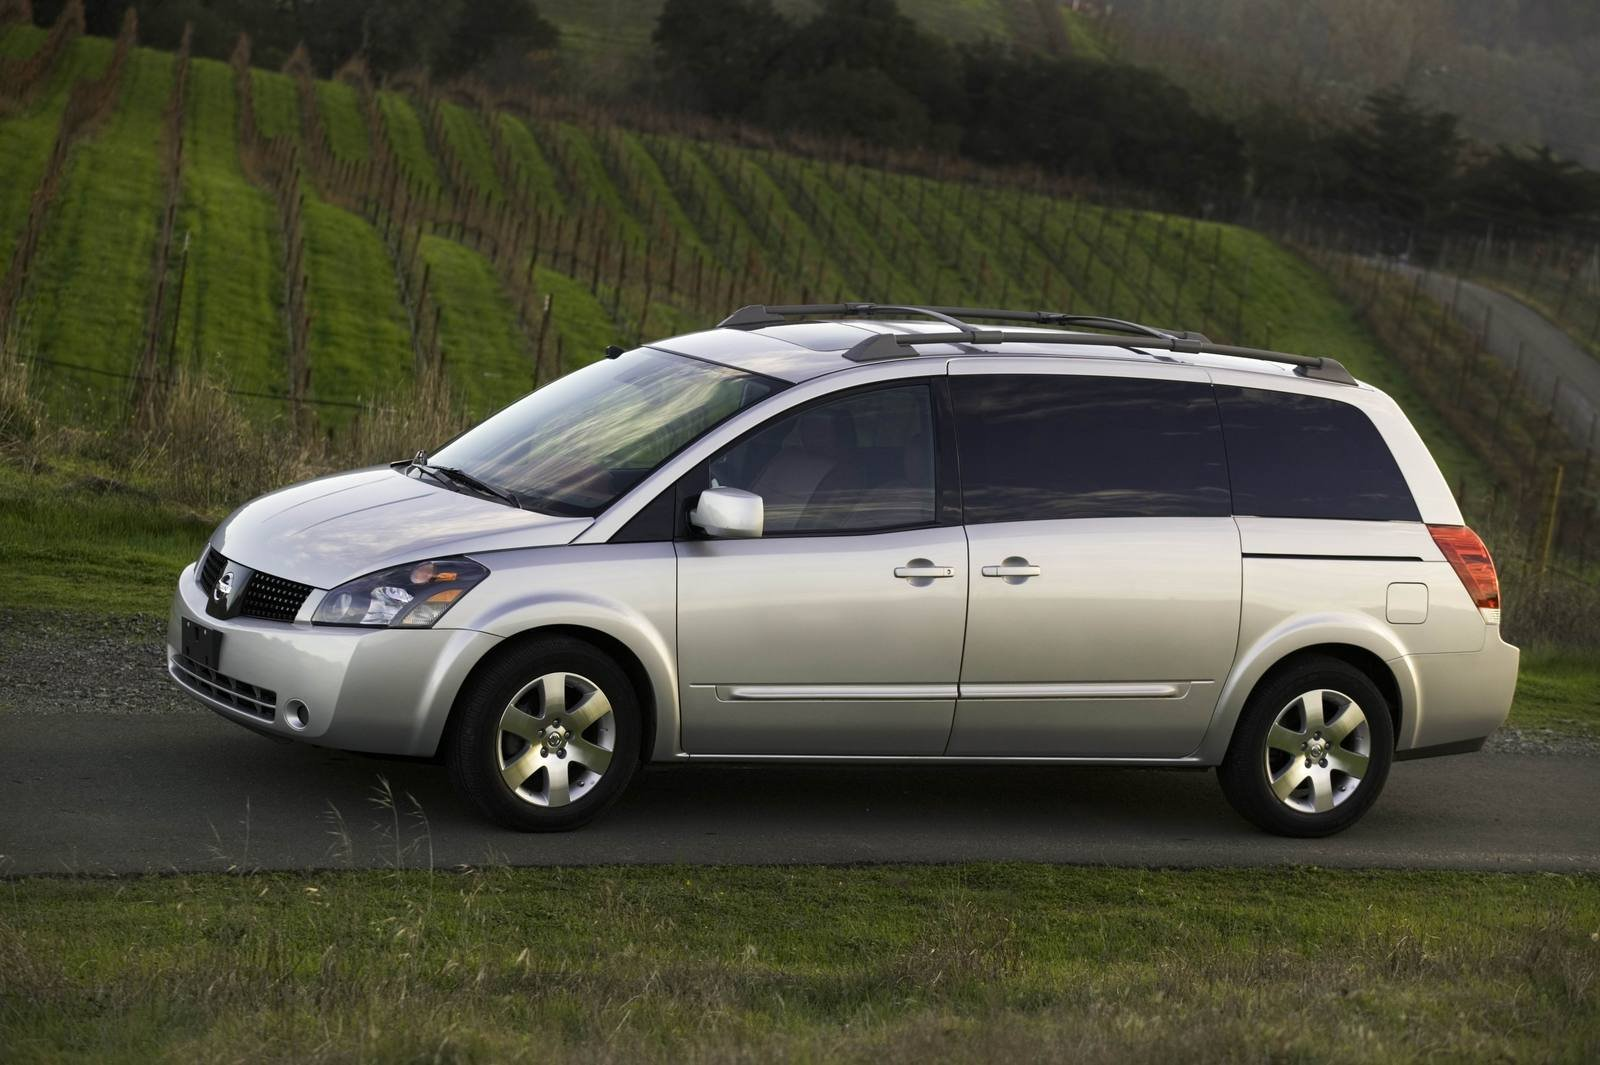 2006 nissan quest picture 41232 car review top speed. Black Bedroom Furniture Sets. Home Design Ideas